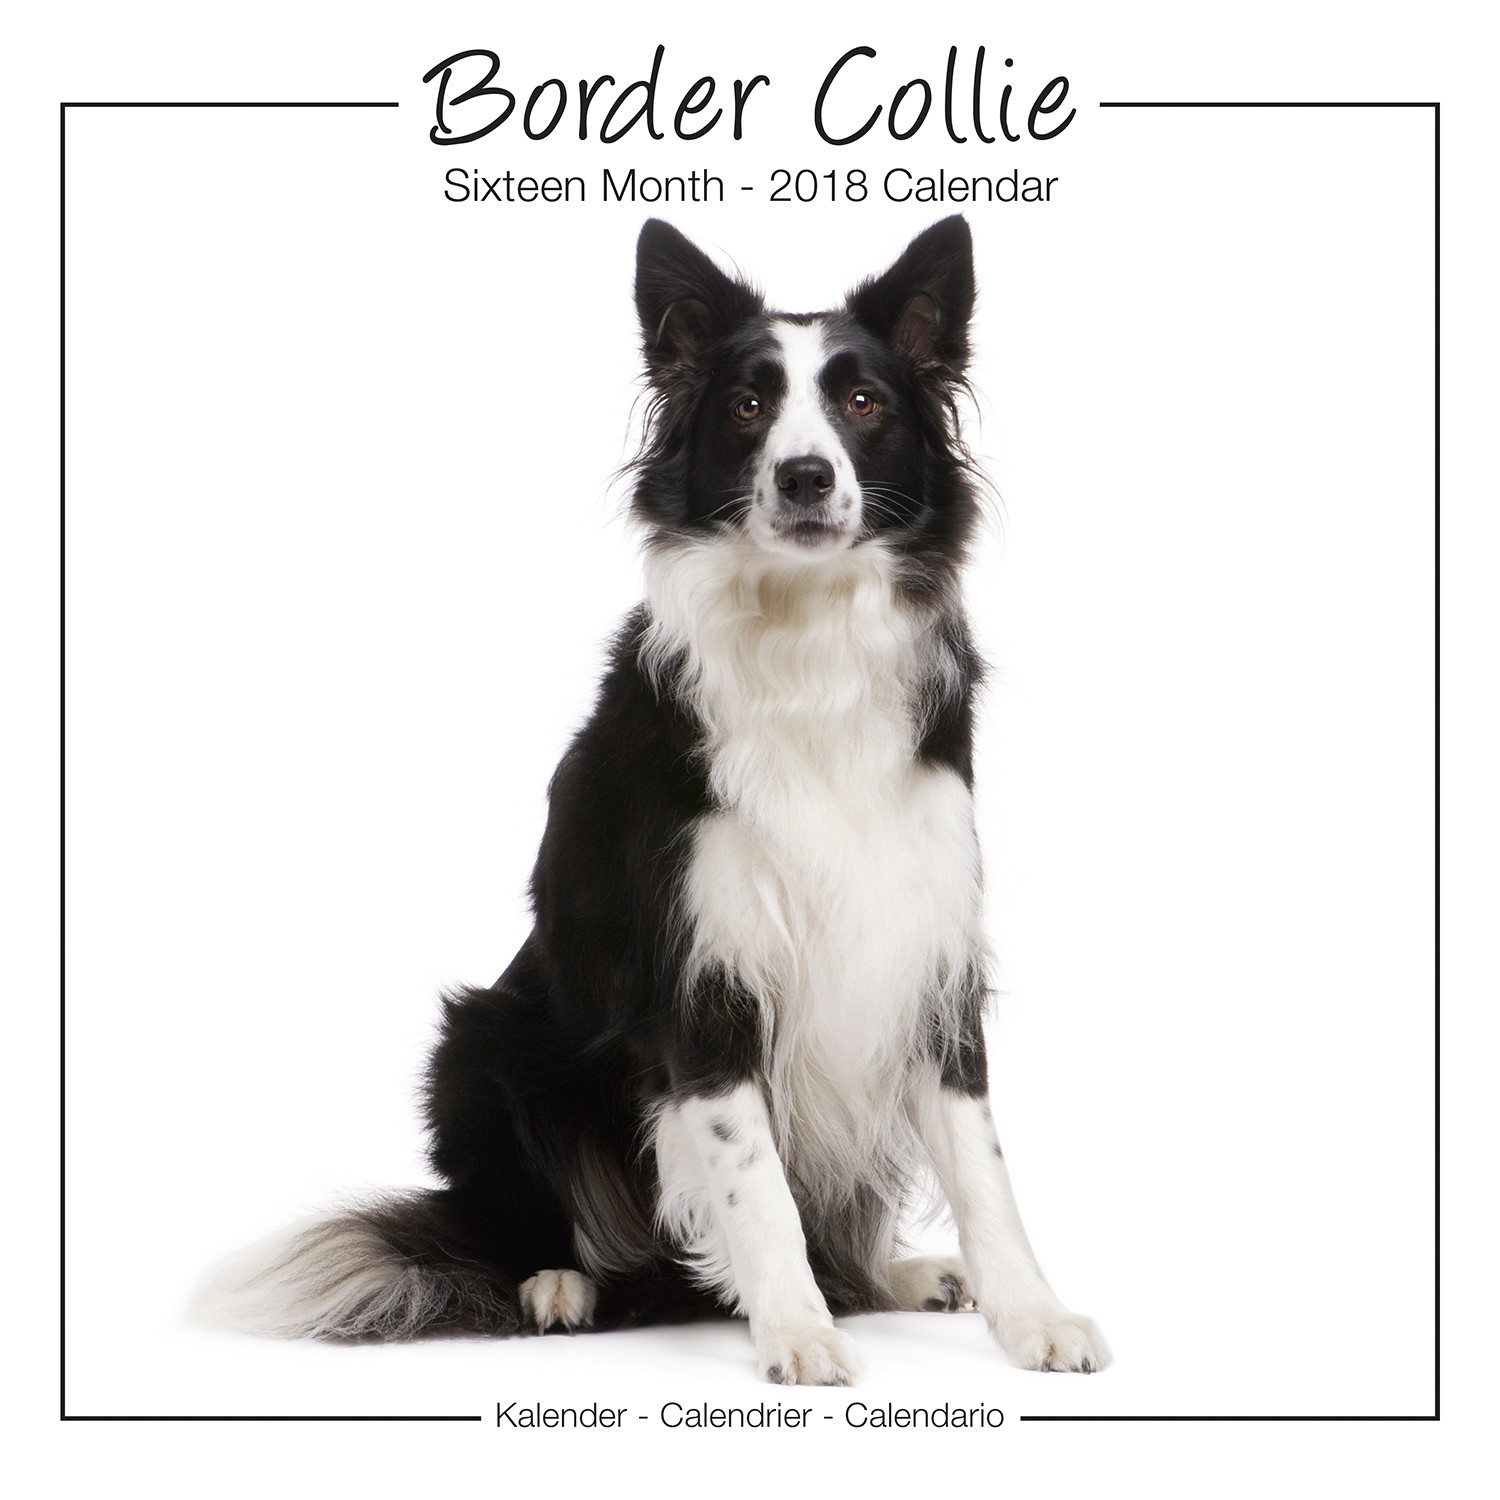 Border Collie Studio Range Wall Calendar 2018